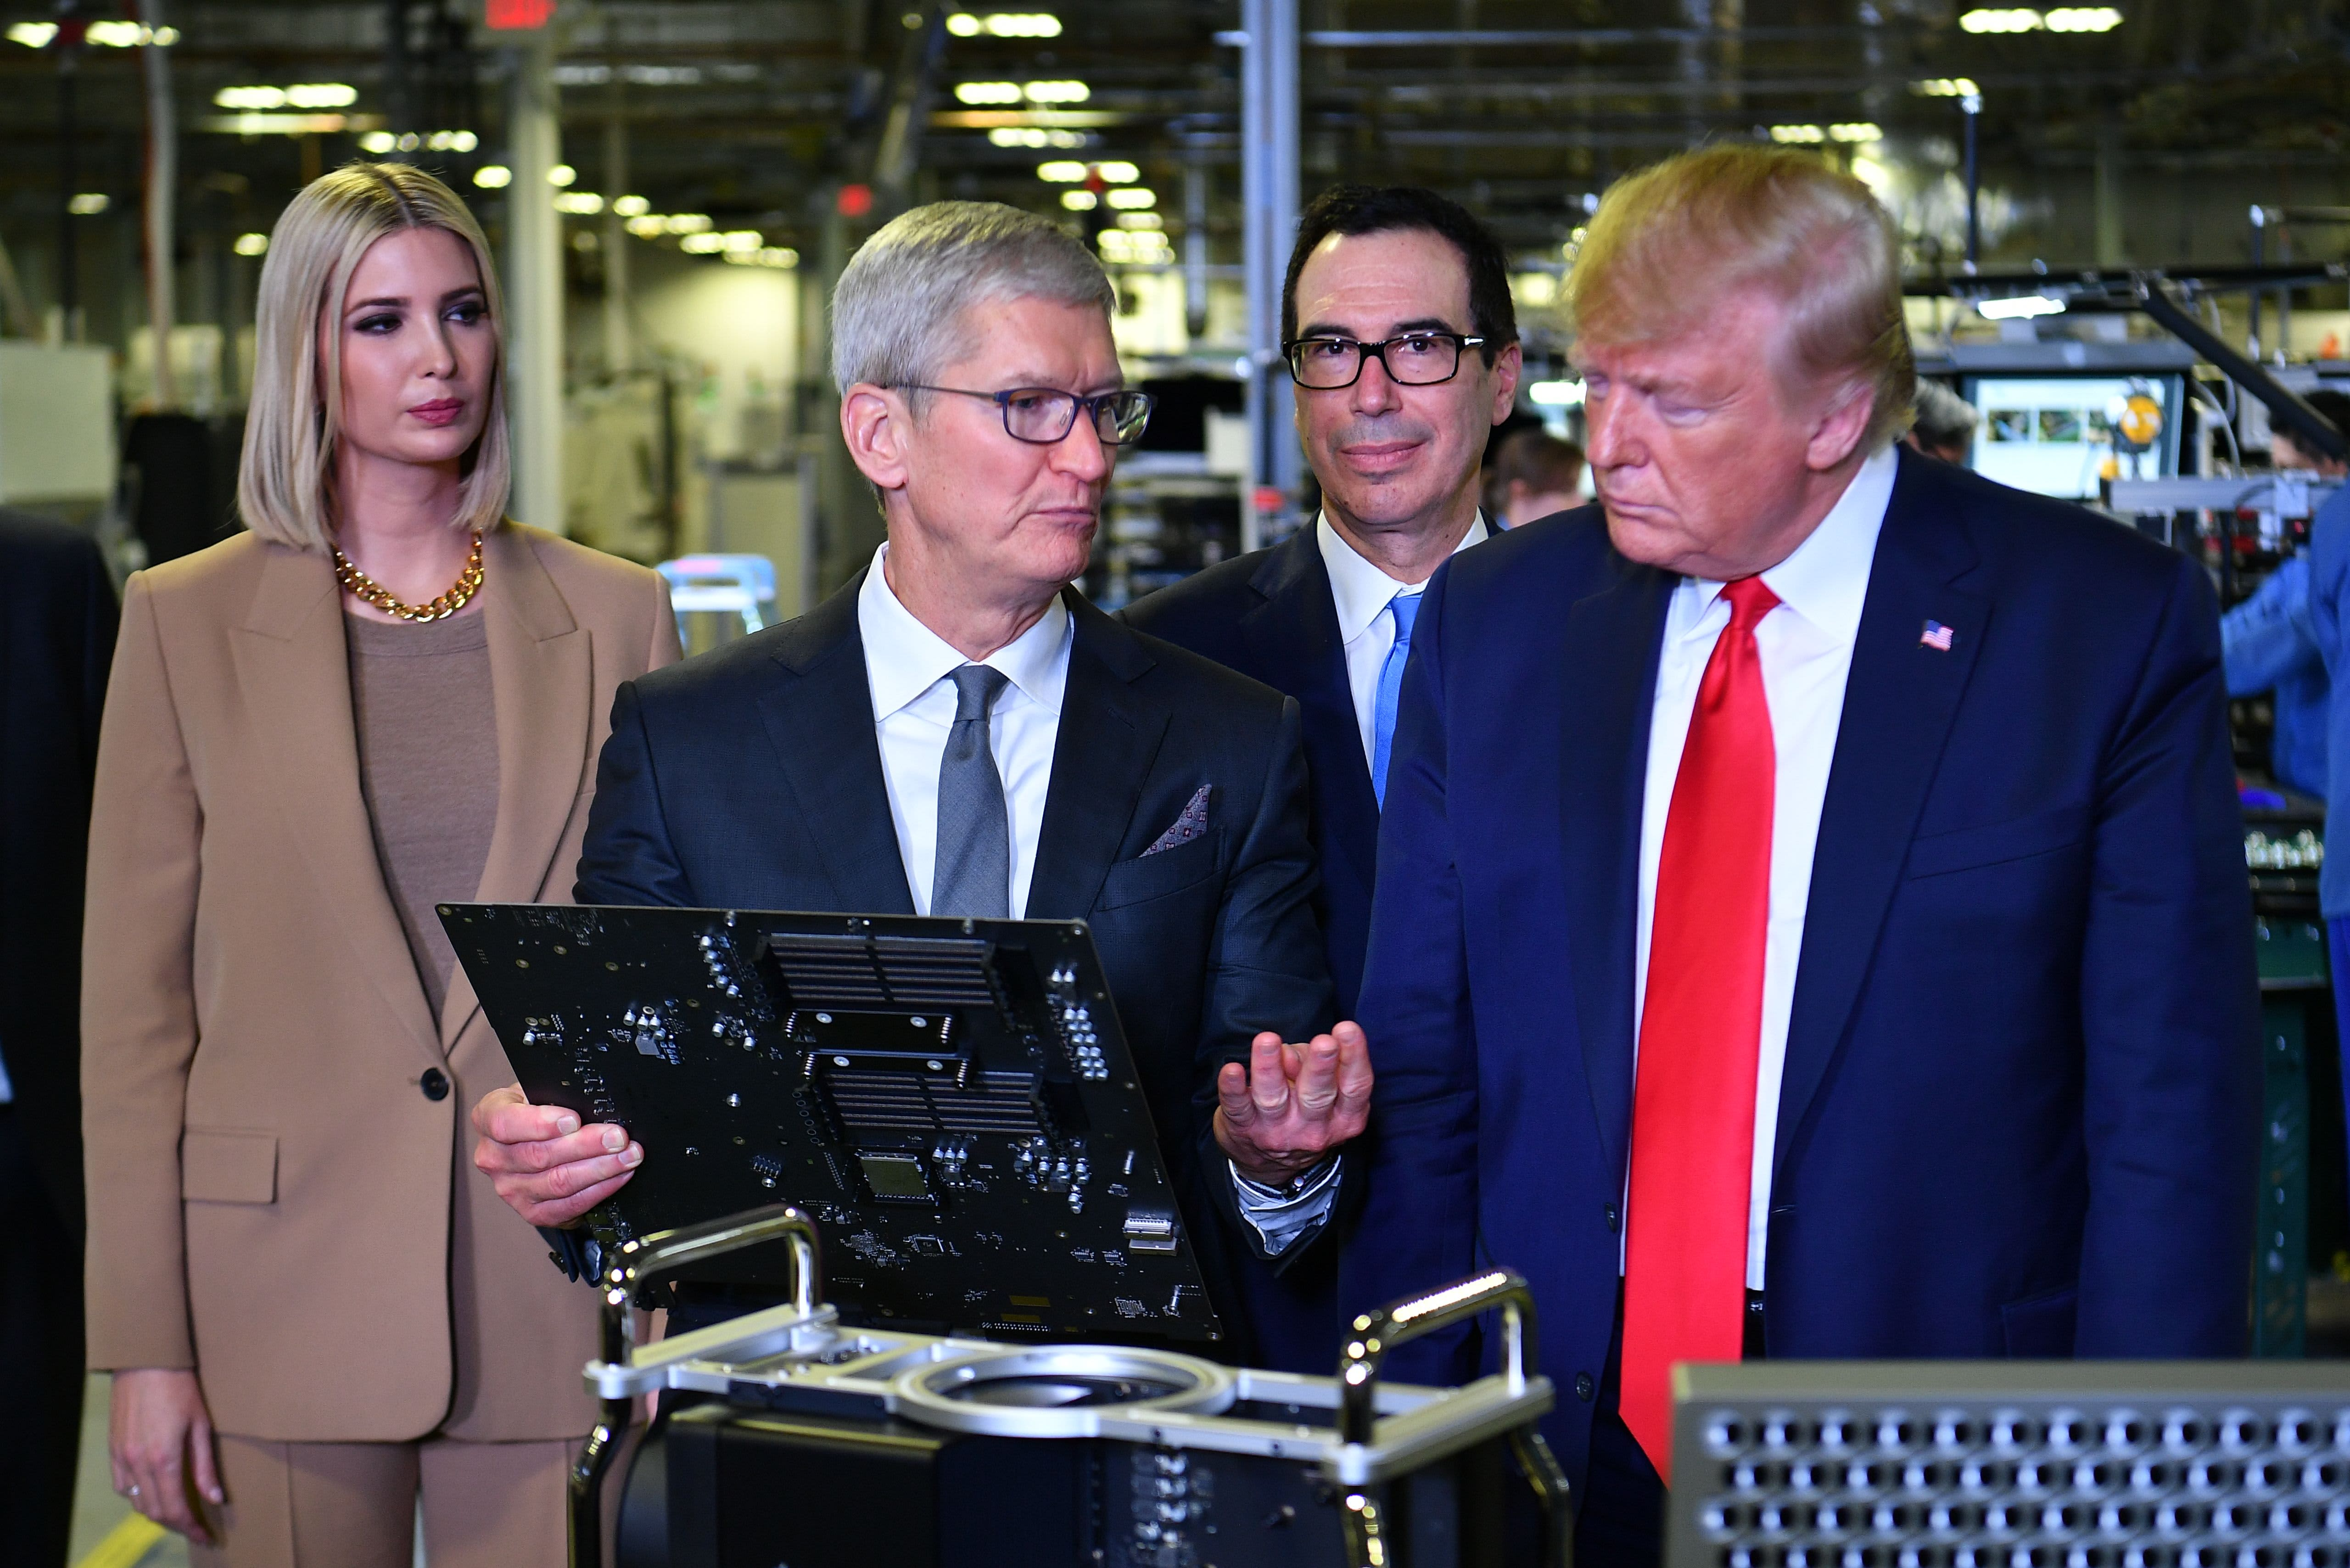 Trump demands Apple unlock iPhones: 'They have the keys to so many criminals and criminal minds' - CNBC